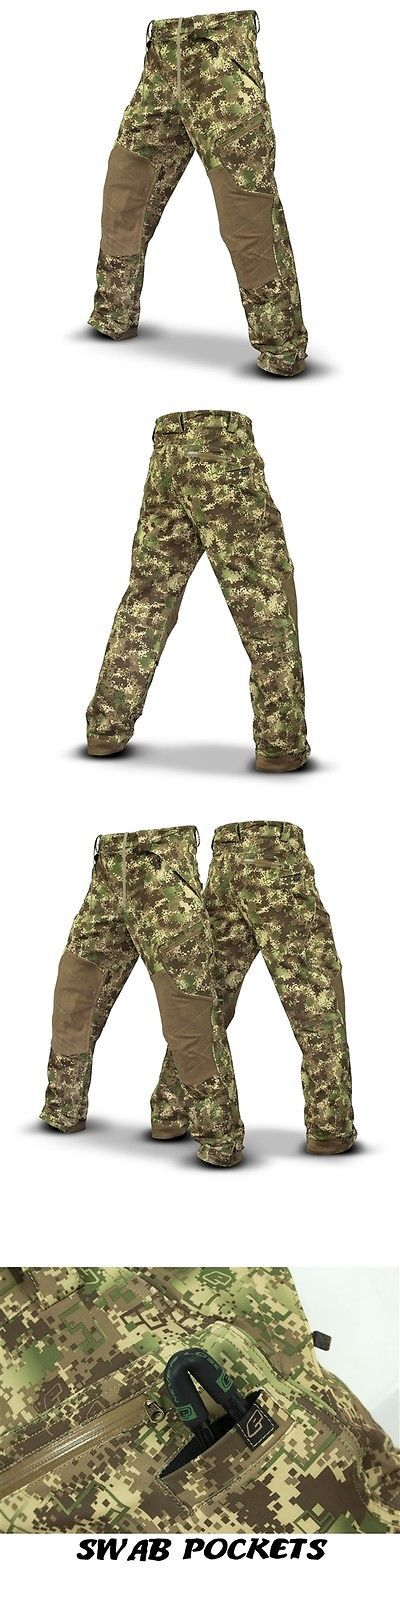 Pants and Shorts 165940: Planet Eclipse Elite Pants Hde Camo - Small - Paintball -> BUY IT NOW ONLY: $179.95 on eBay!